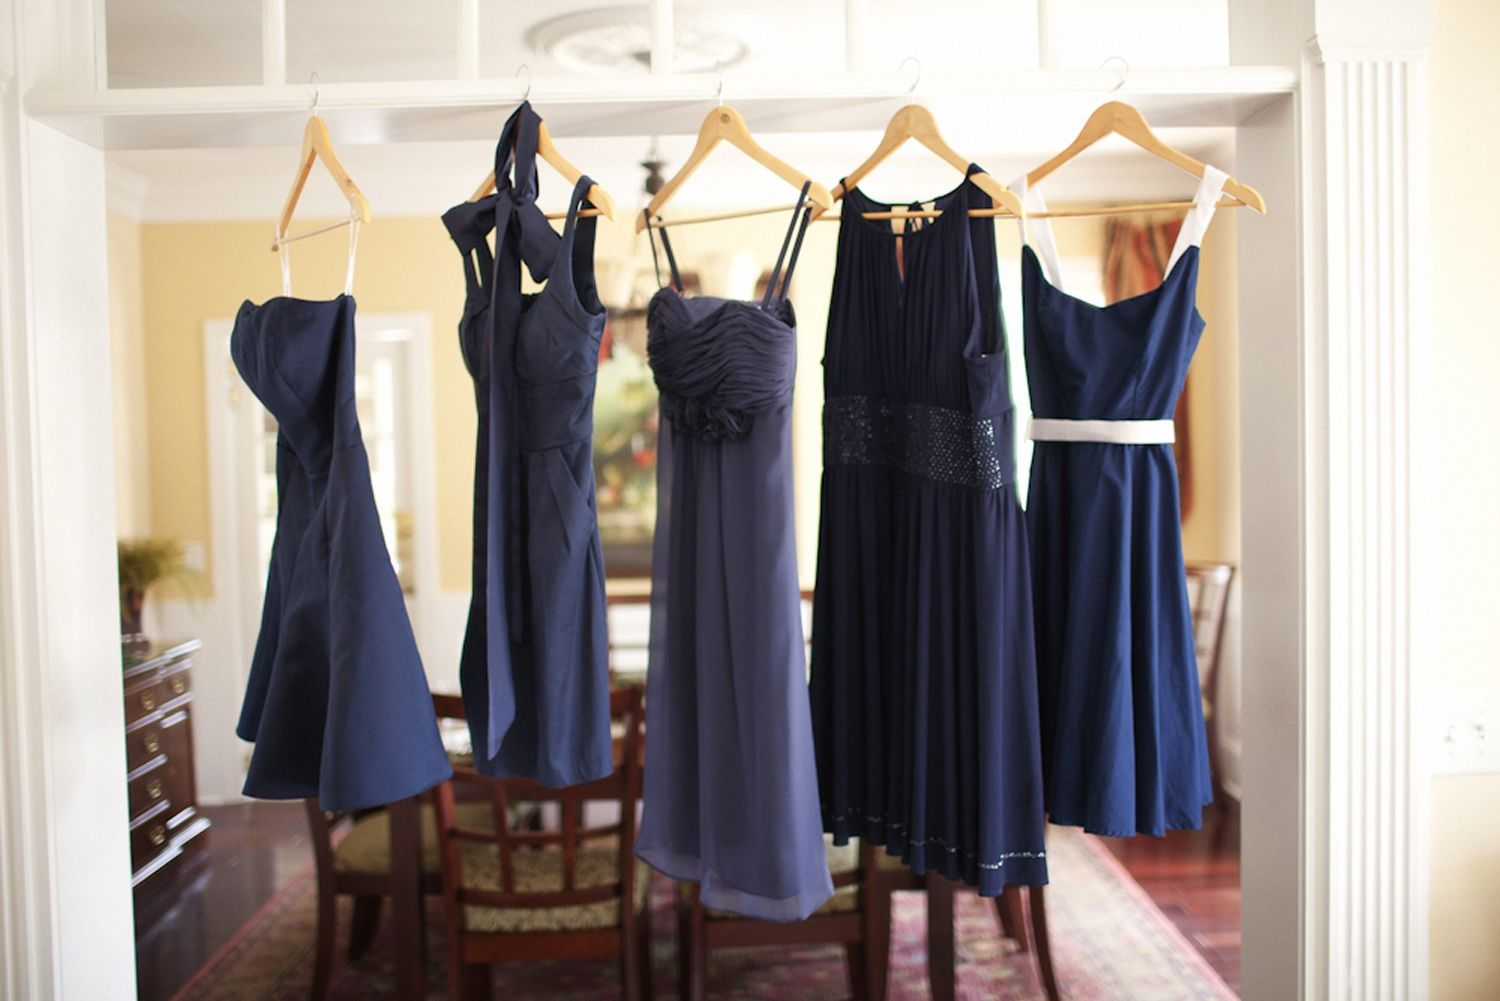 navy blue wedding dress Mix and match navy blue bridesmaids dresses I think I could let go of